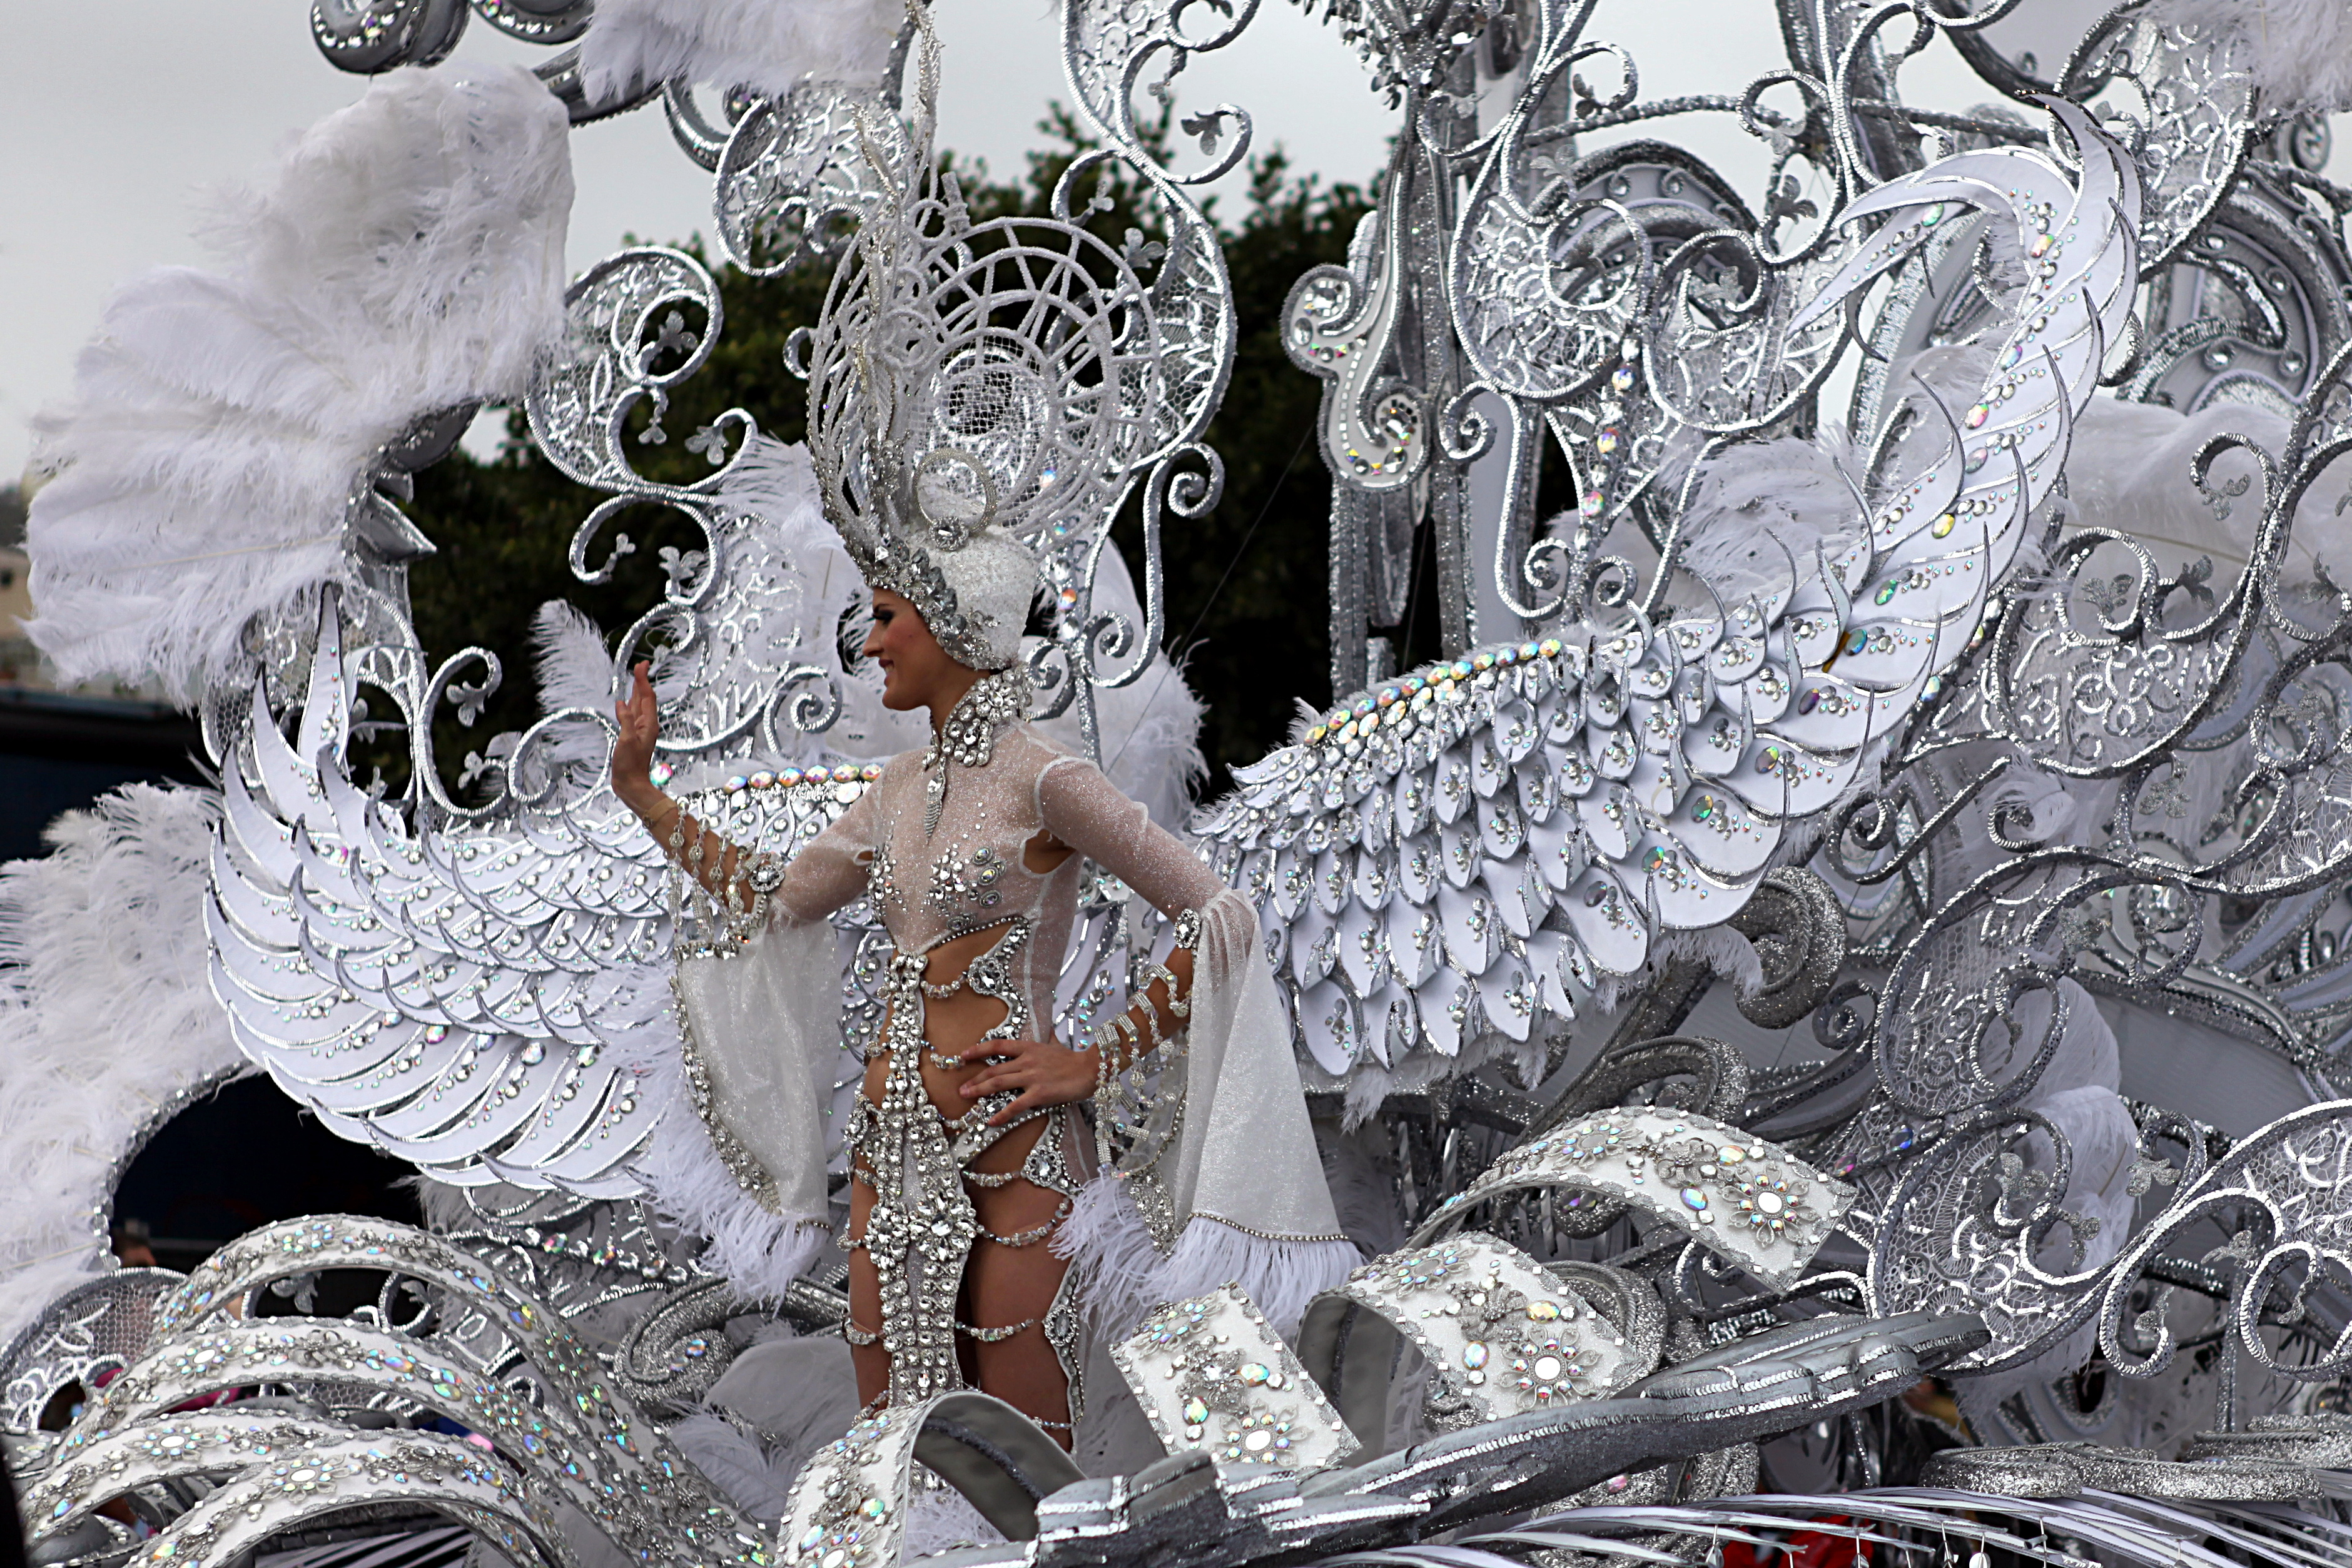 carnival of santa cruz de tenerife The 2017 tenerife carnival: the canary islands with a caribbean spirit   carnaval de tenerife  and then get ready for the next soiree: the carnival  season, which is held throughout the island, particularly in santa cruz.